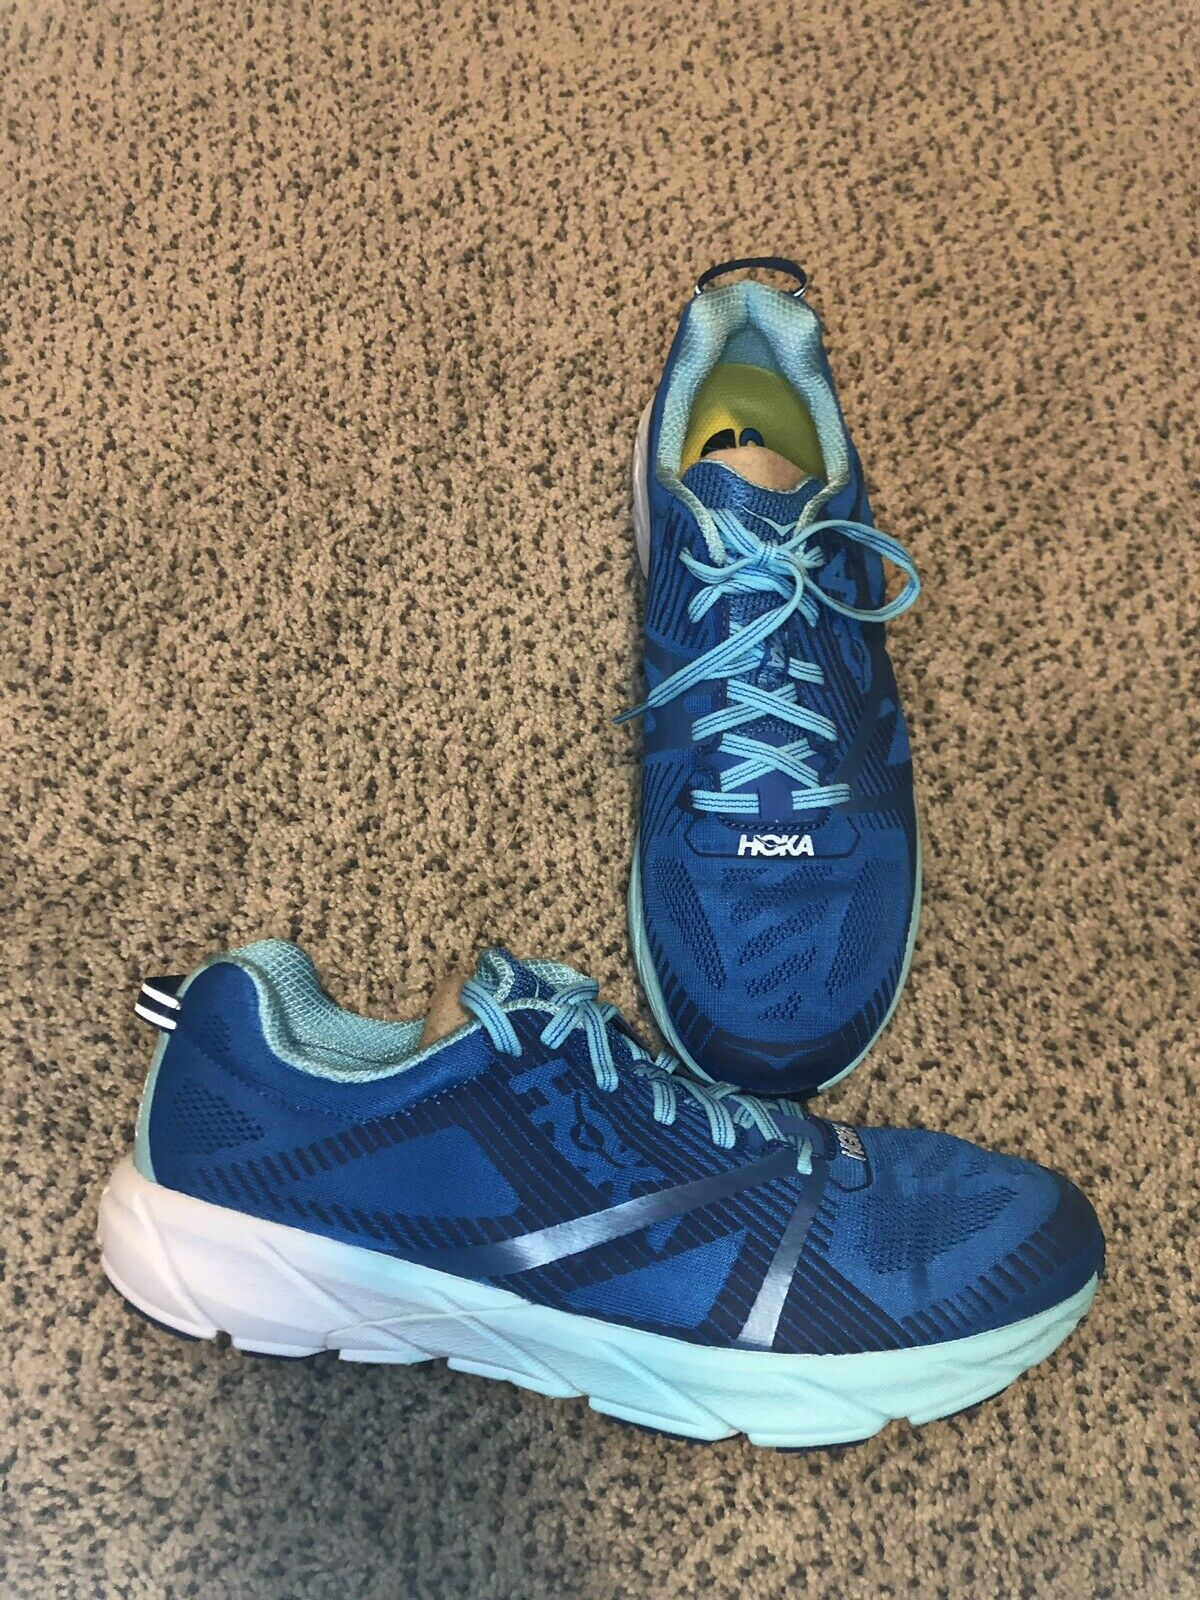 NEW MENS HOKA ONE ONE TRACER 2 RUNNING SHOES - 9 -  3 - blueE - AUTHENTIC